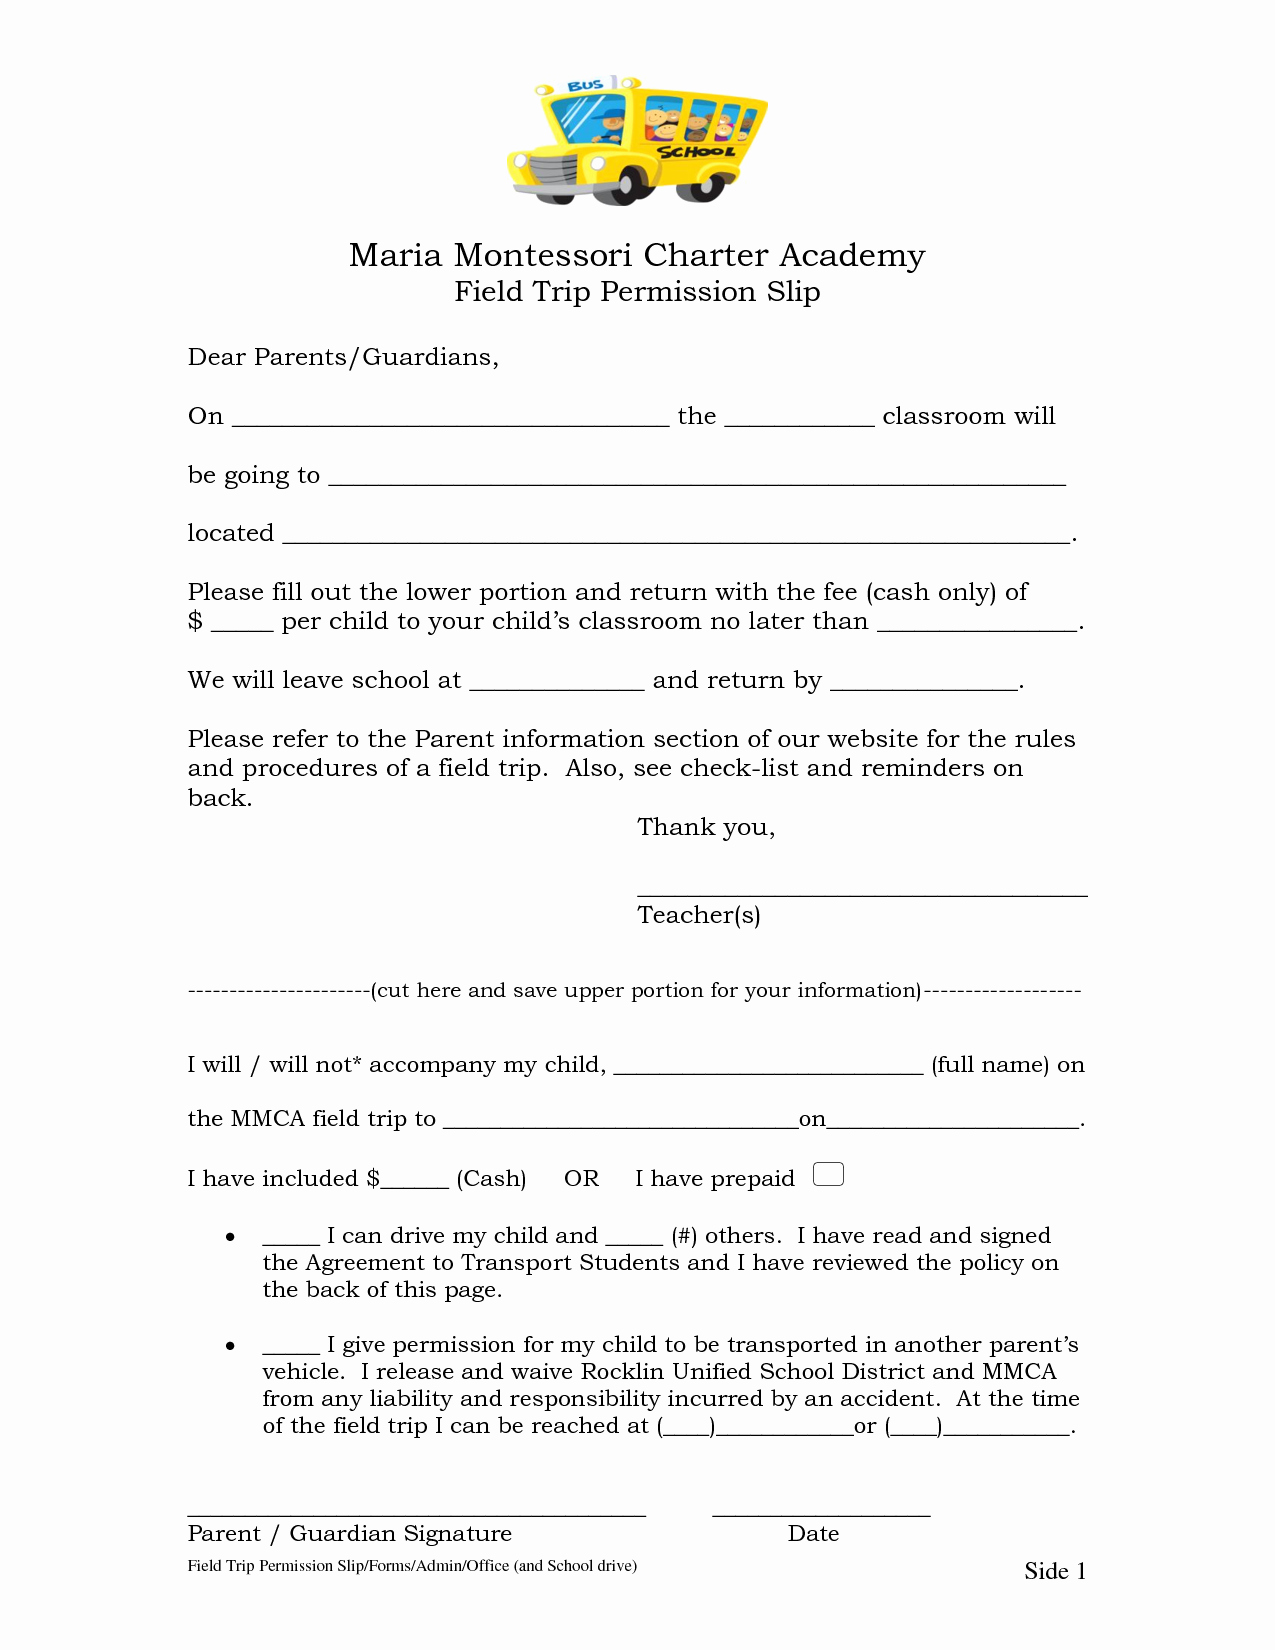 Field Trip form Template Unique Permission Slip Field Trip